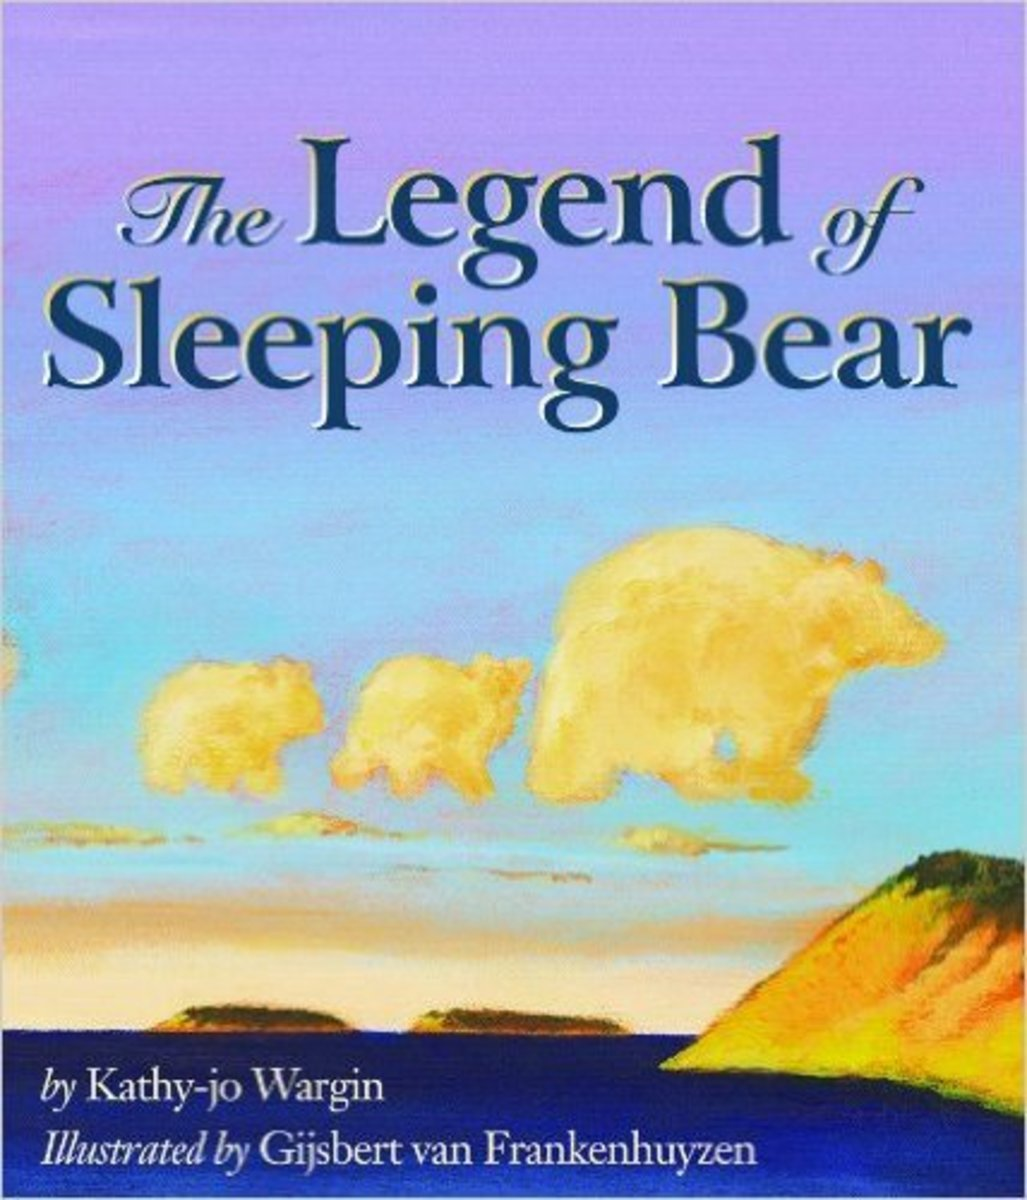 The Legend of Sleeping Bear by Kathy-Jo Wargin - All images are from amazon.com unless otherwise noted.